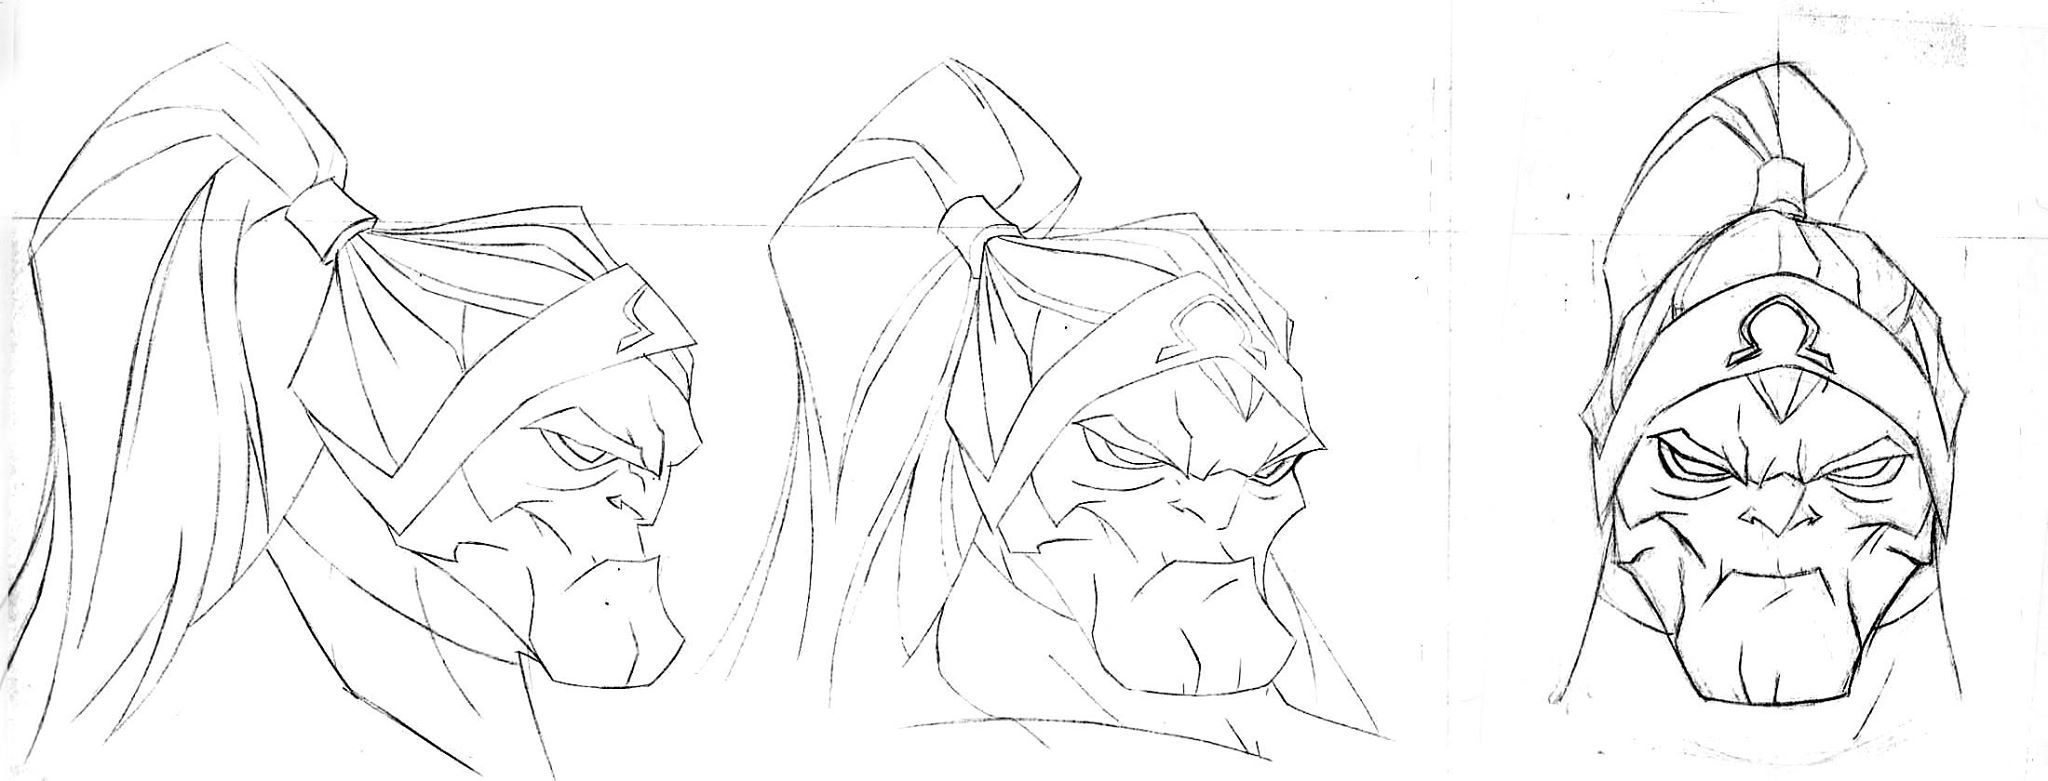 Omega Red head detail and turn by Jeff Matsuda for Wolverine vs. Hulk